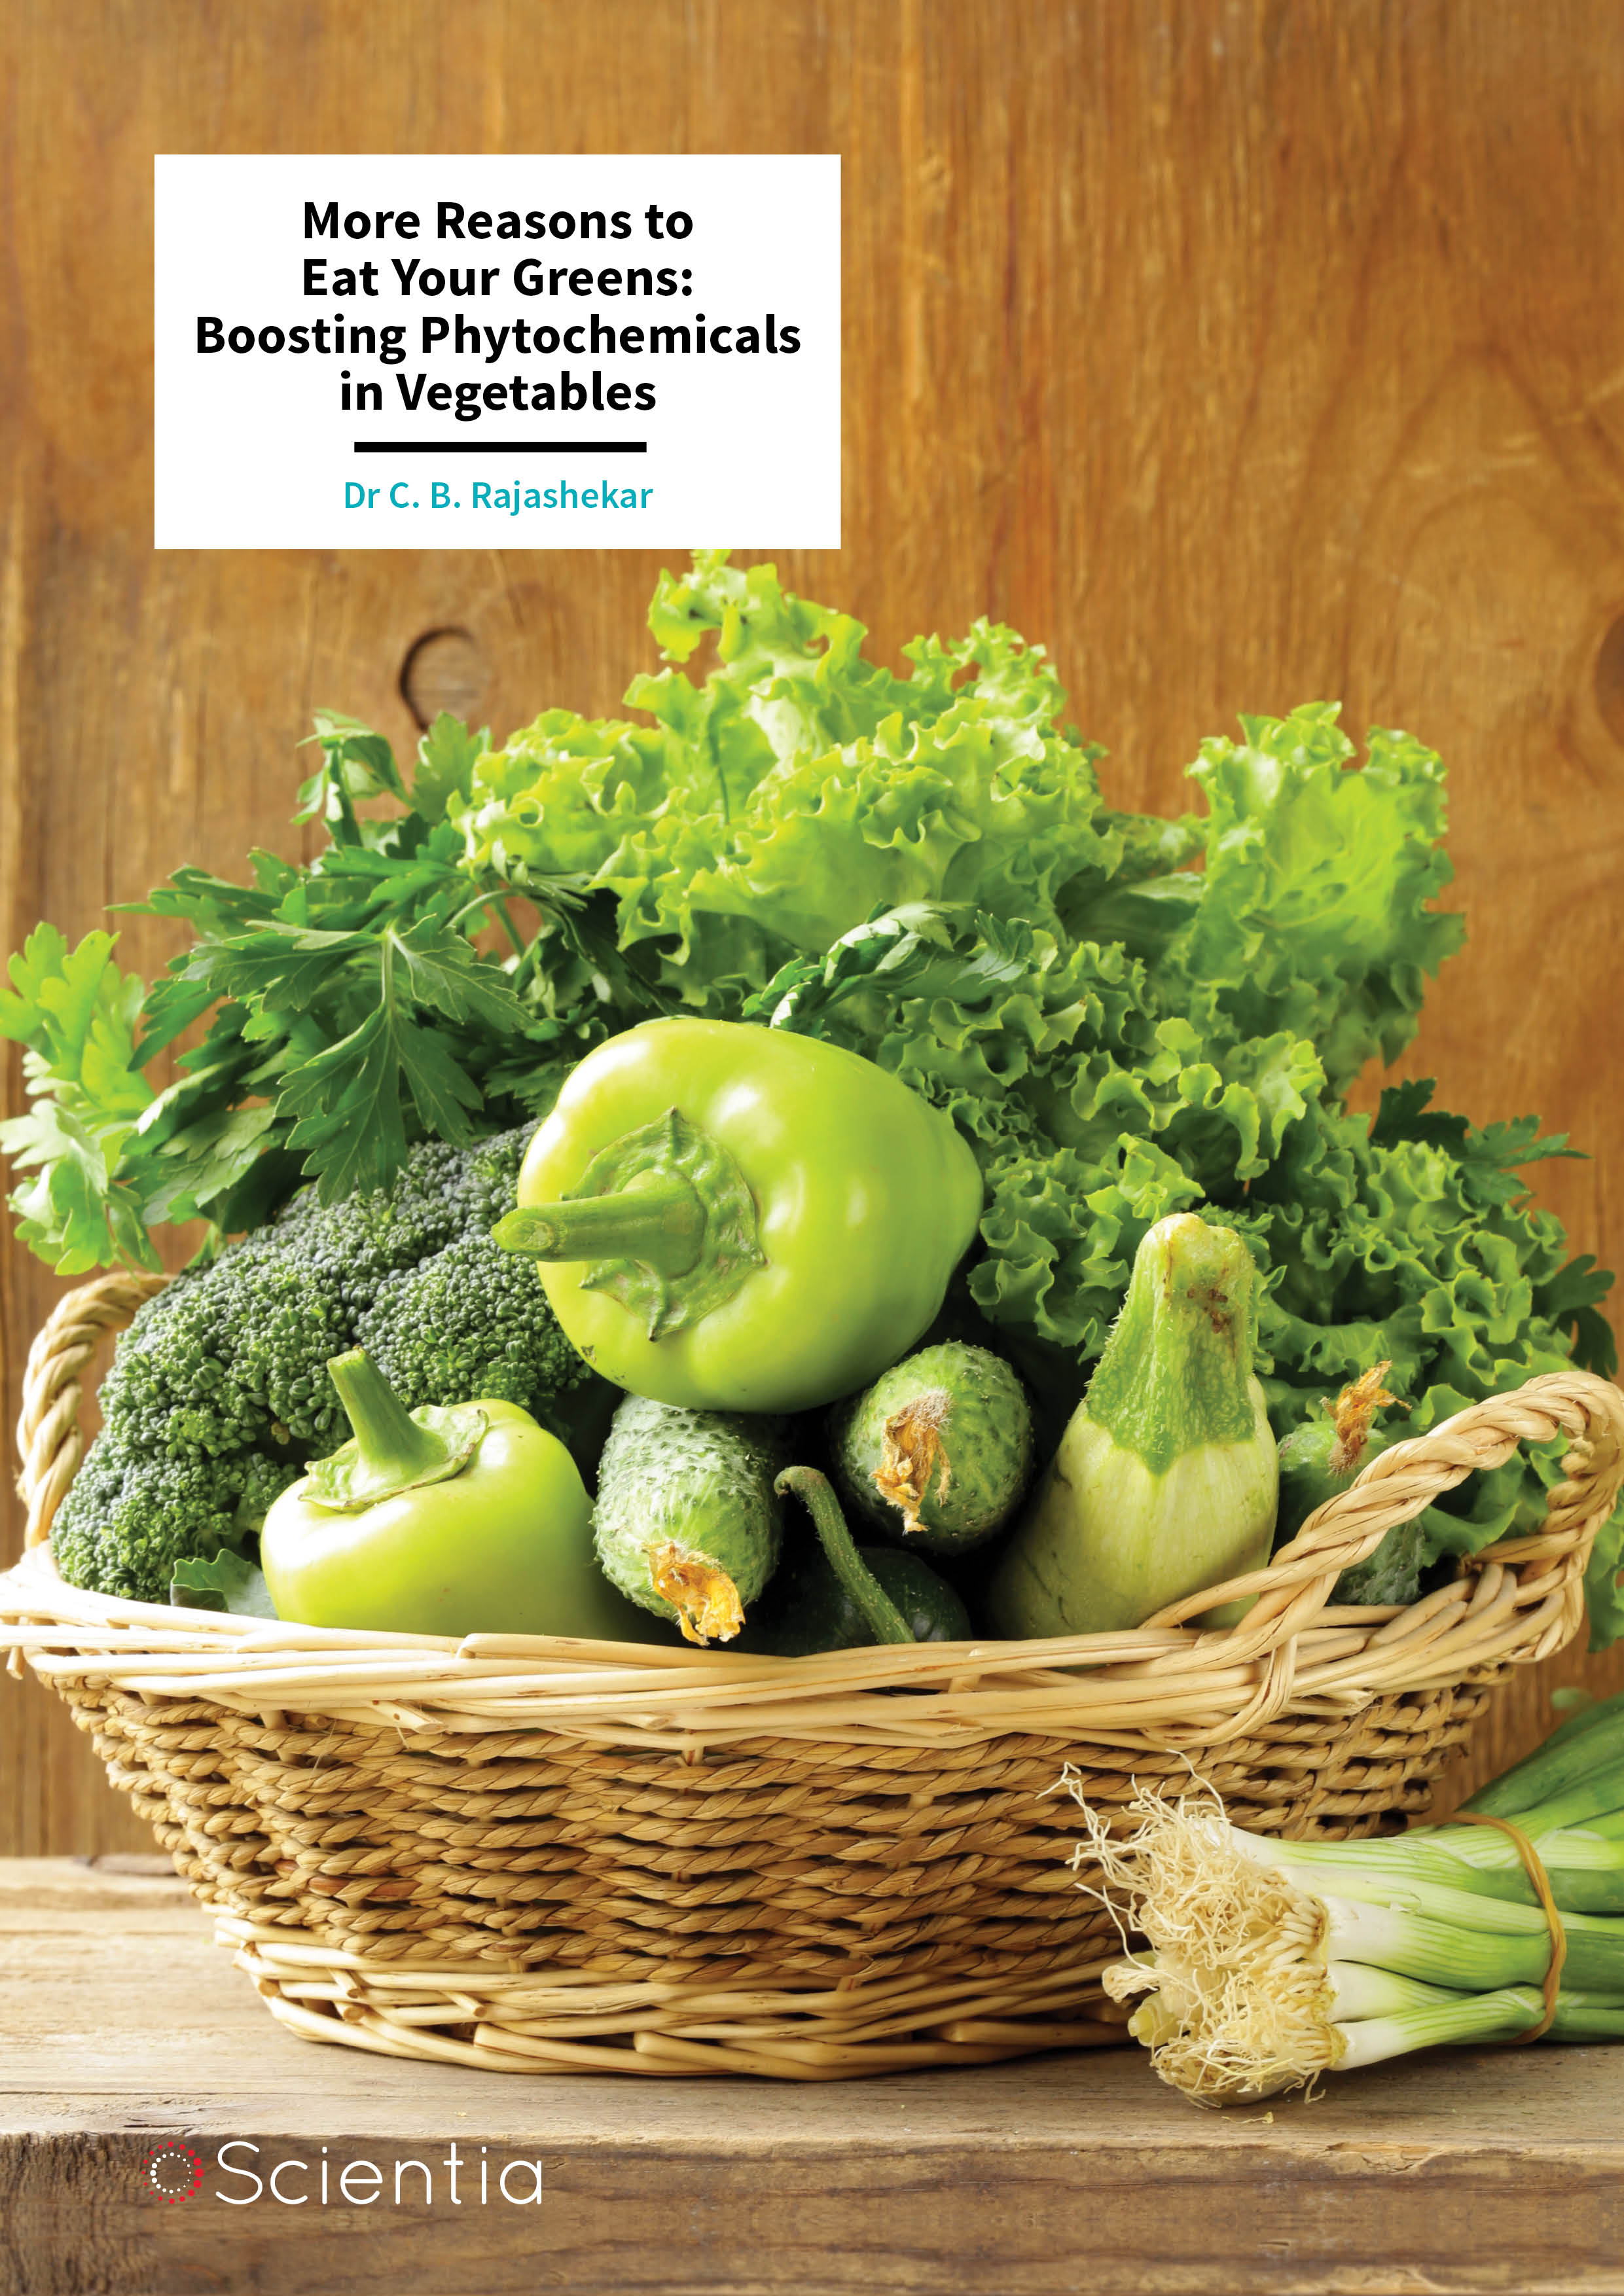 Dr C. B. Rajashekar – More Reasons to Eat Your Greens: Boosting Phytochemicals in Vegetables